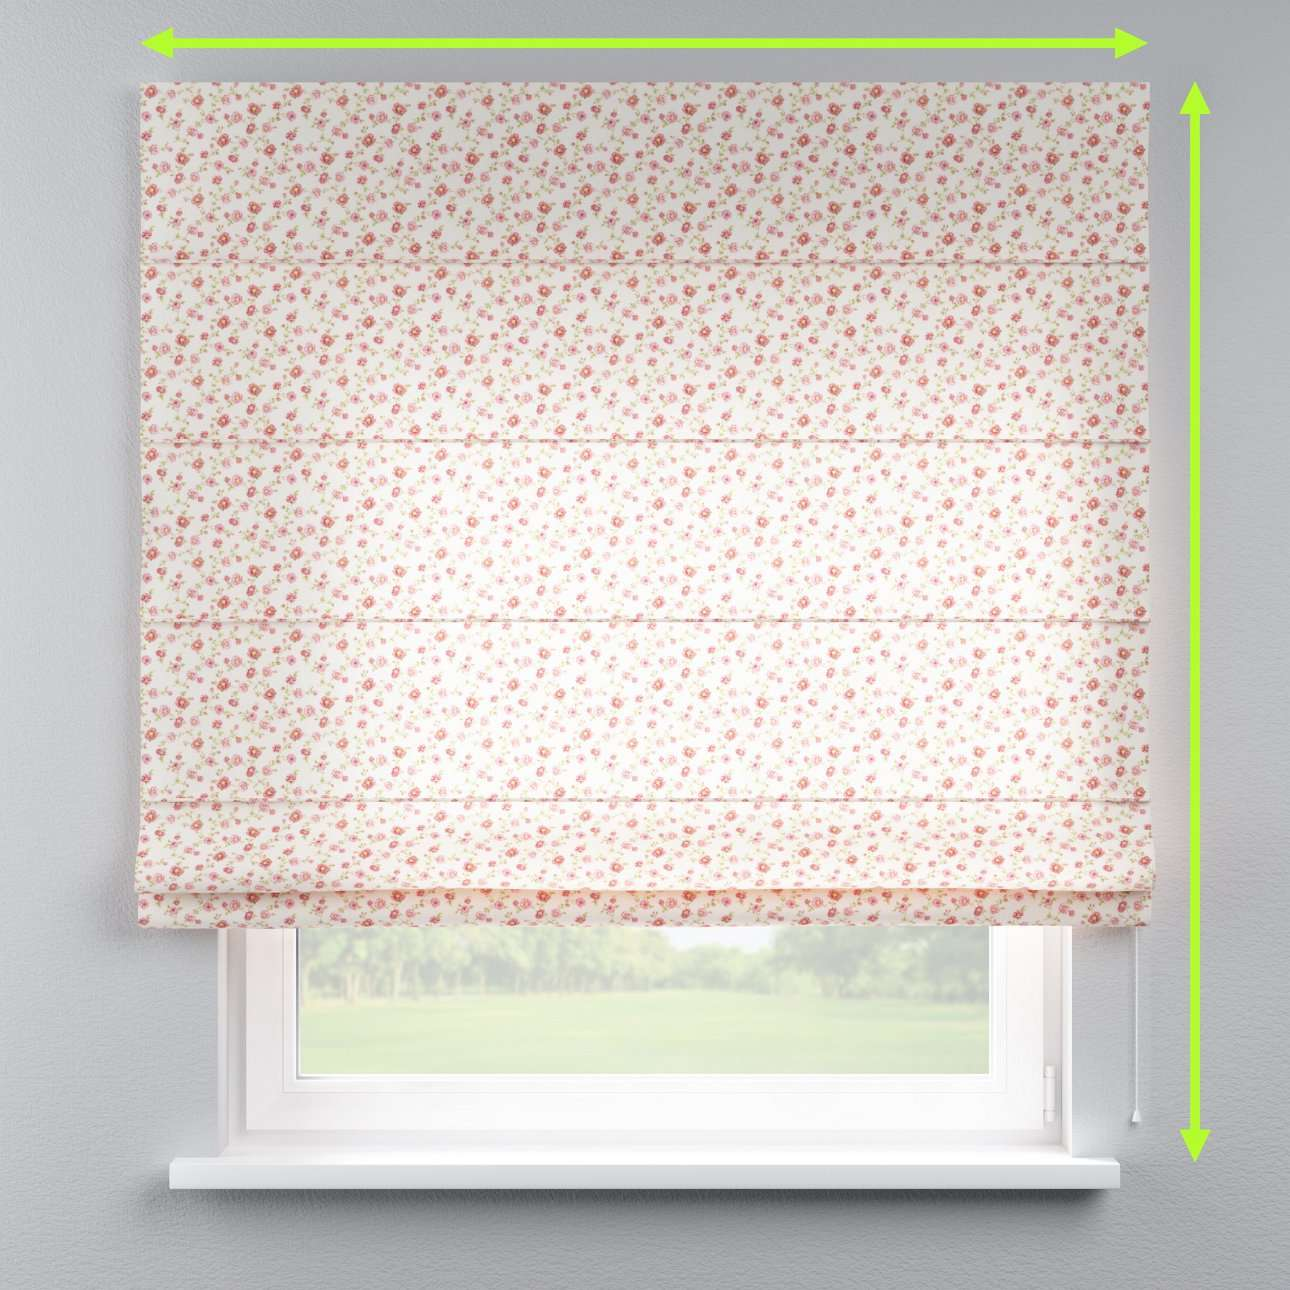 Capri roman blind in collection Ashley, fabric: 137-49